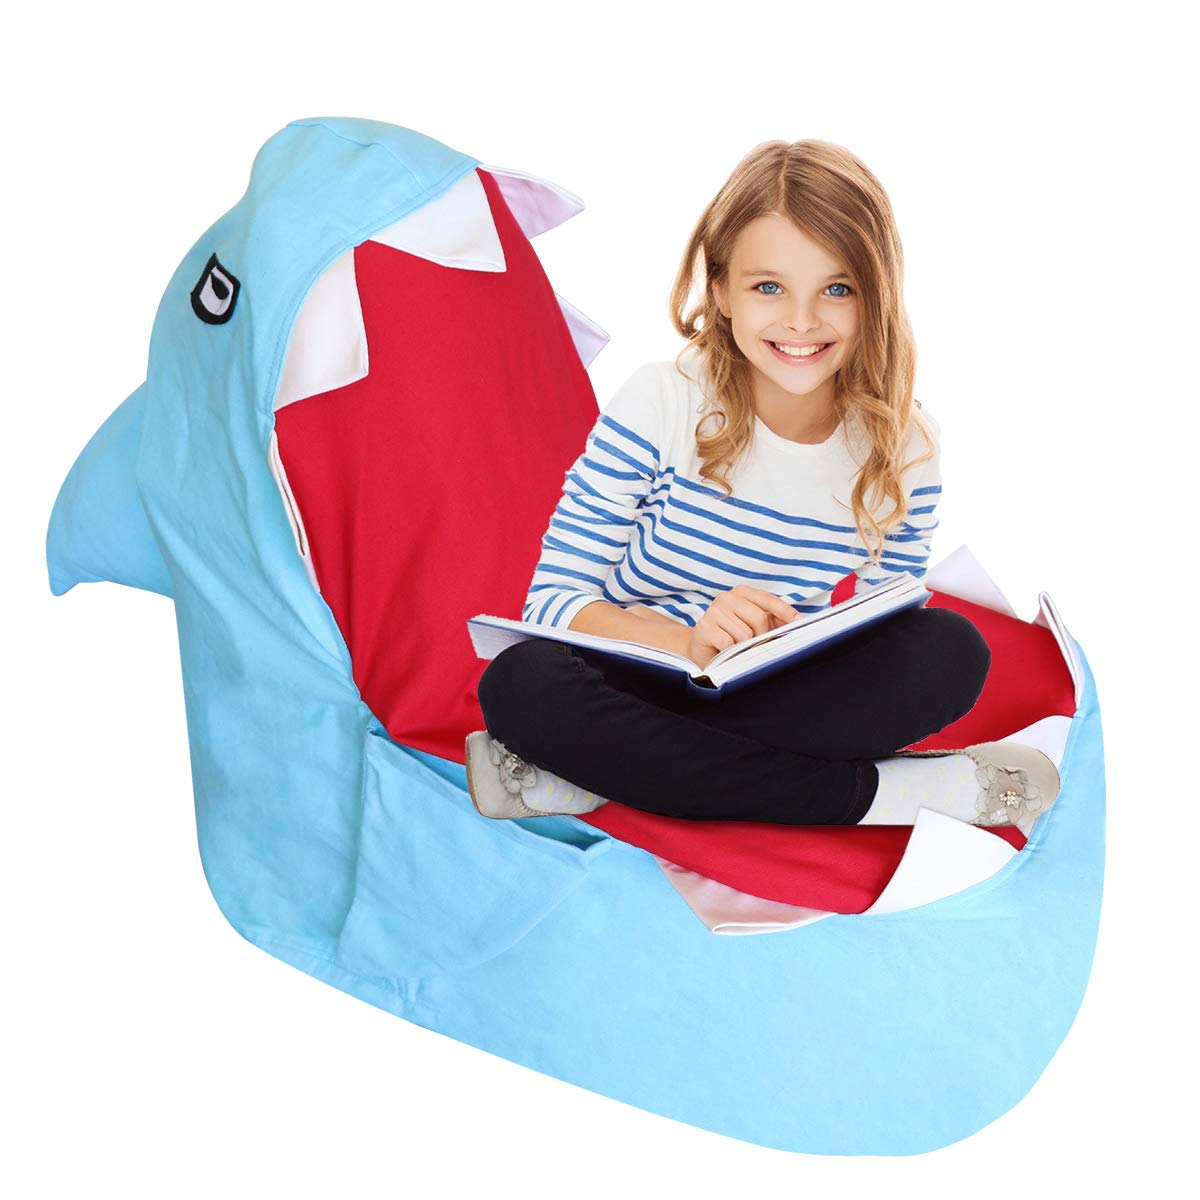 TOPNEW Storage Bean Bag Animal Stuffed Storage Chair, Plush Animal Toys Canvas Organizer, Pillow Clothes Stuffed Storage Bag No Stuffing Blue Shark